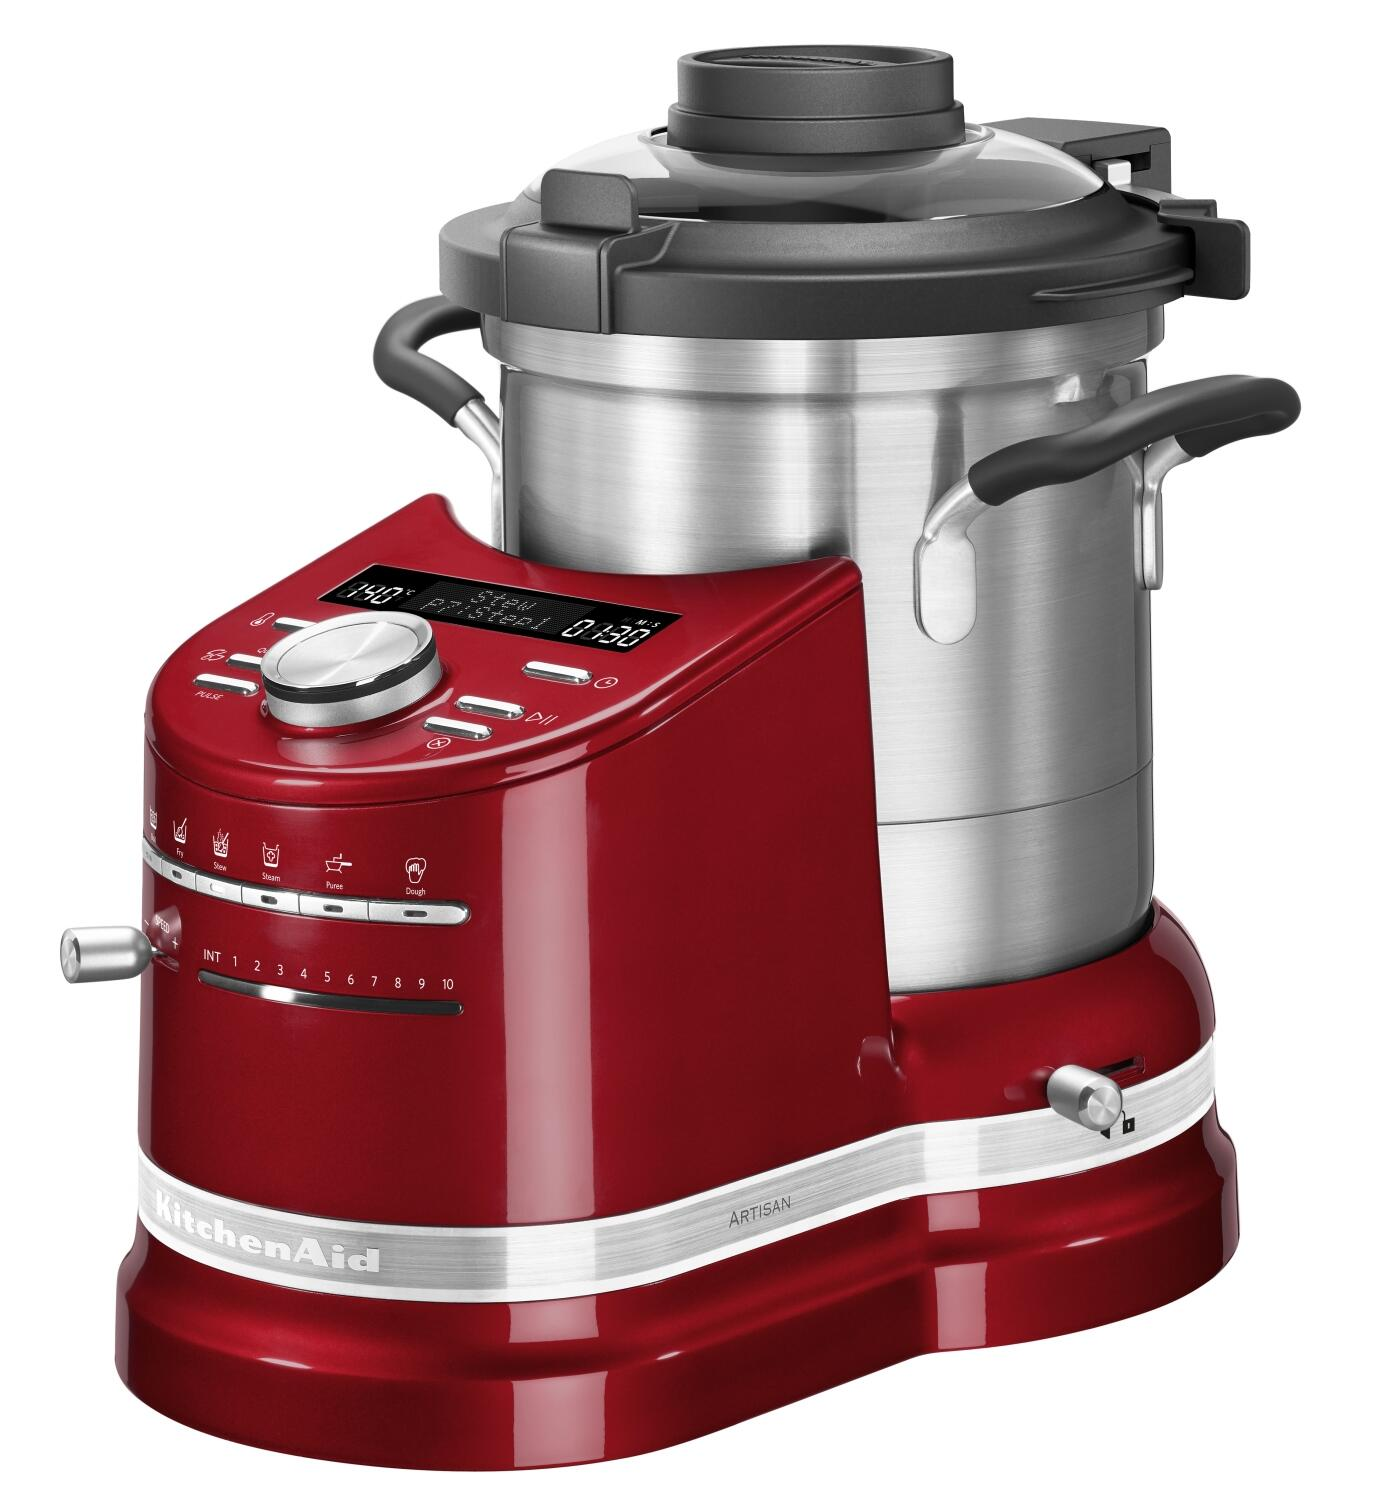 KitchenAid Cook Processor ARTISAN in liebesapfelrot